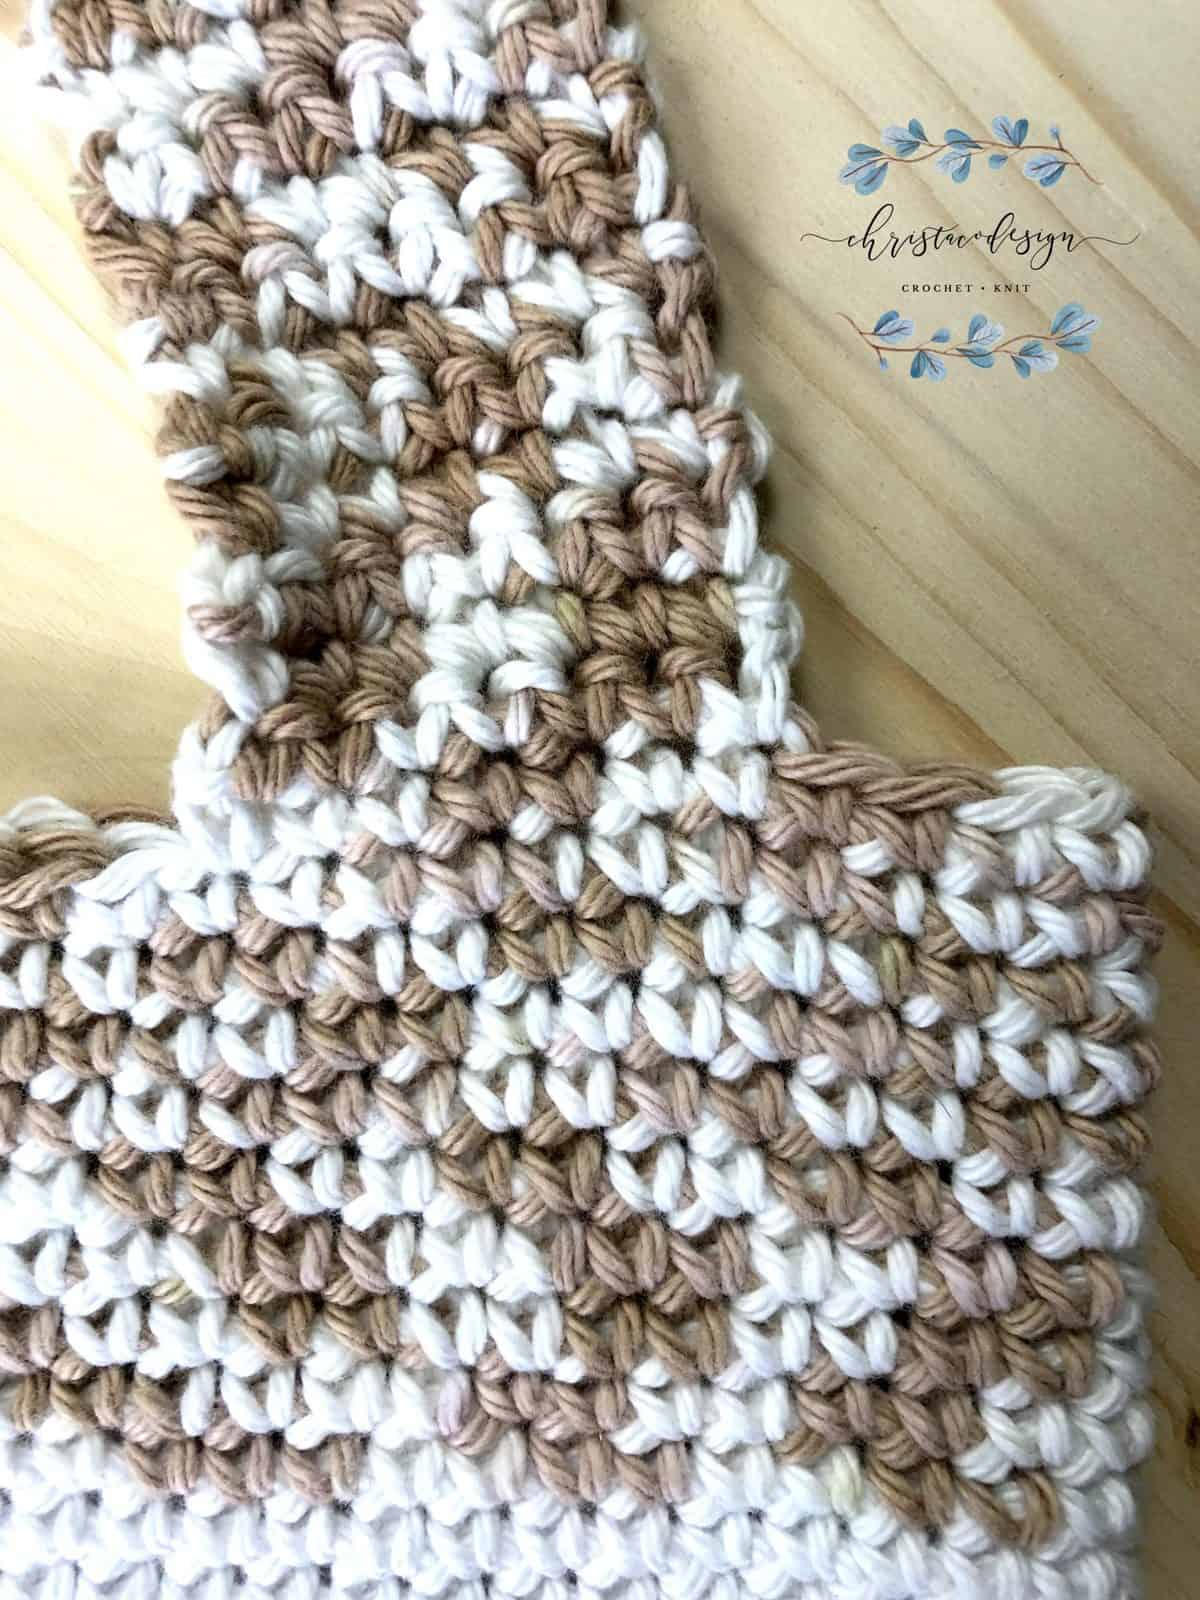 Crochet strap on top of tote bag pattern.